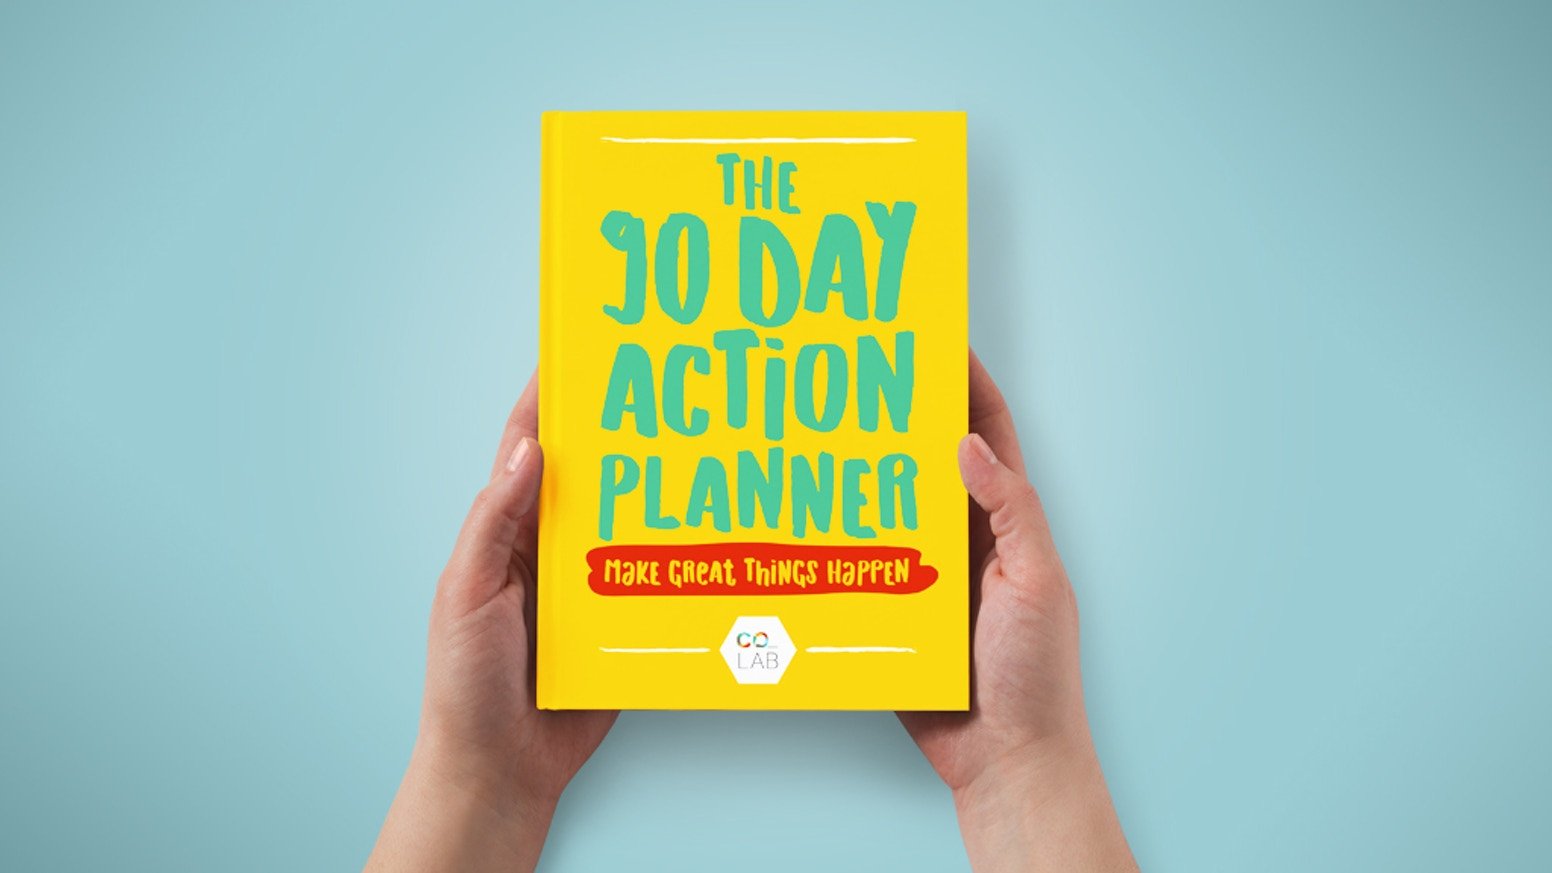 A complete method for creators and innovators: book + training + 90 days of support to help you make great things happen!